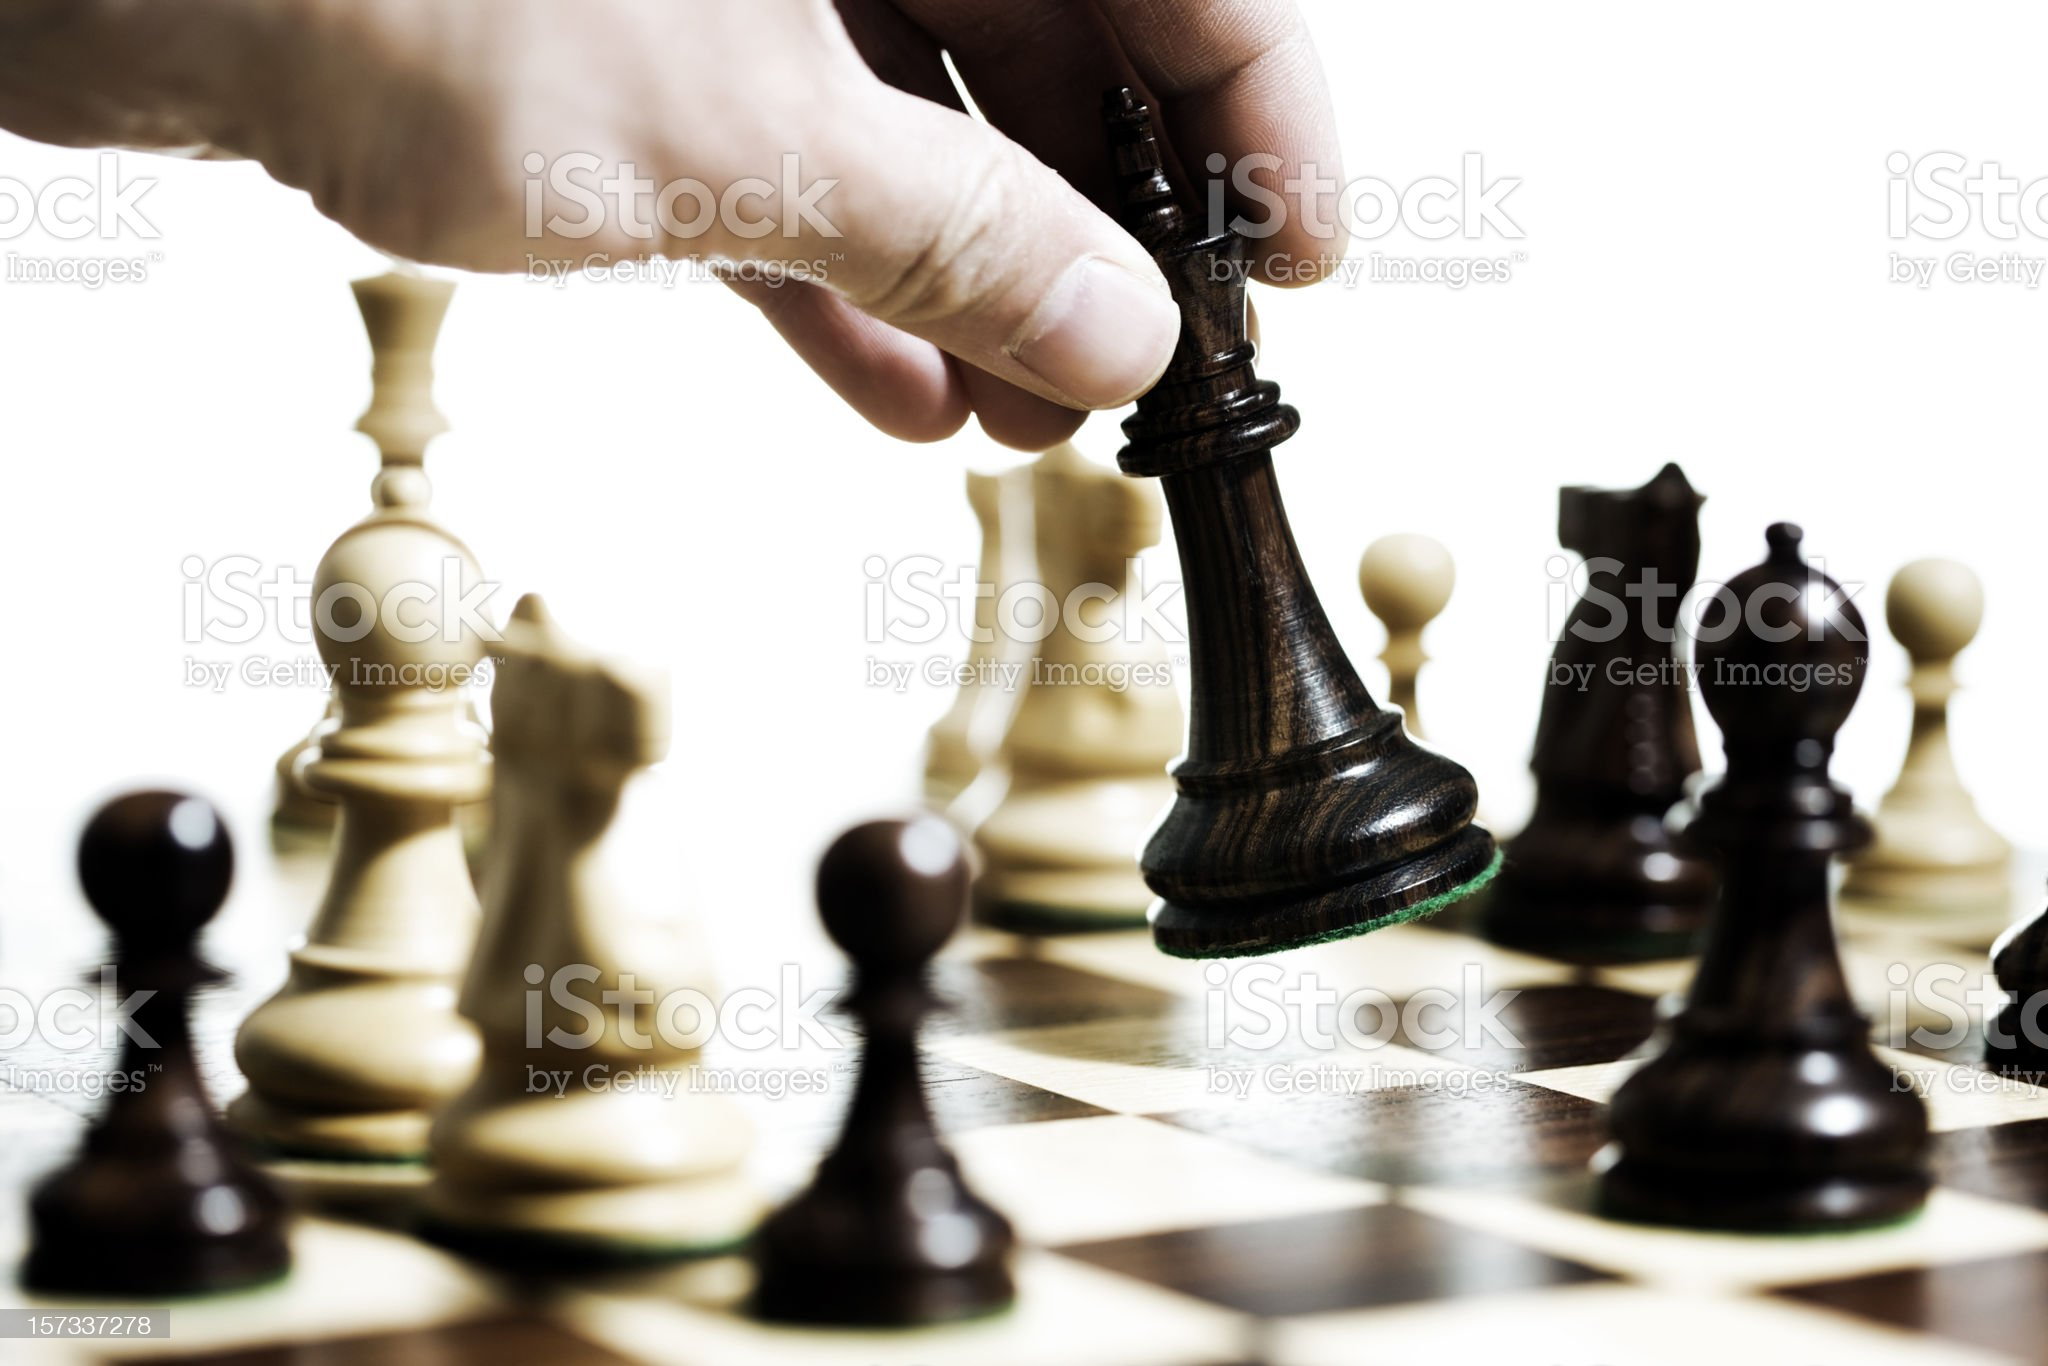 Chess, king's move royalty-free stock photo